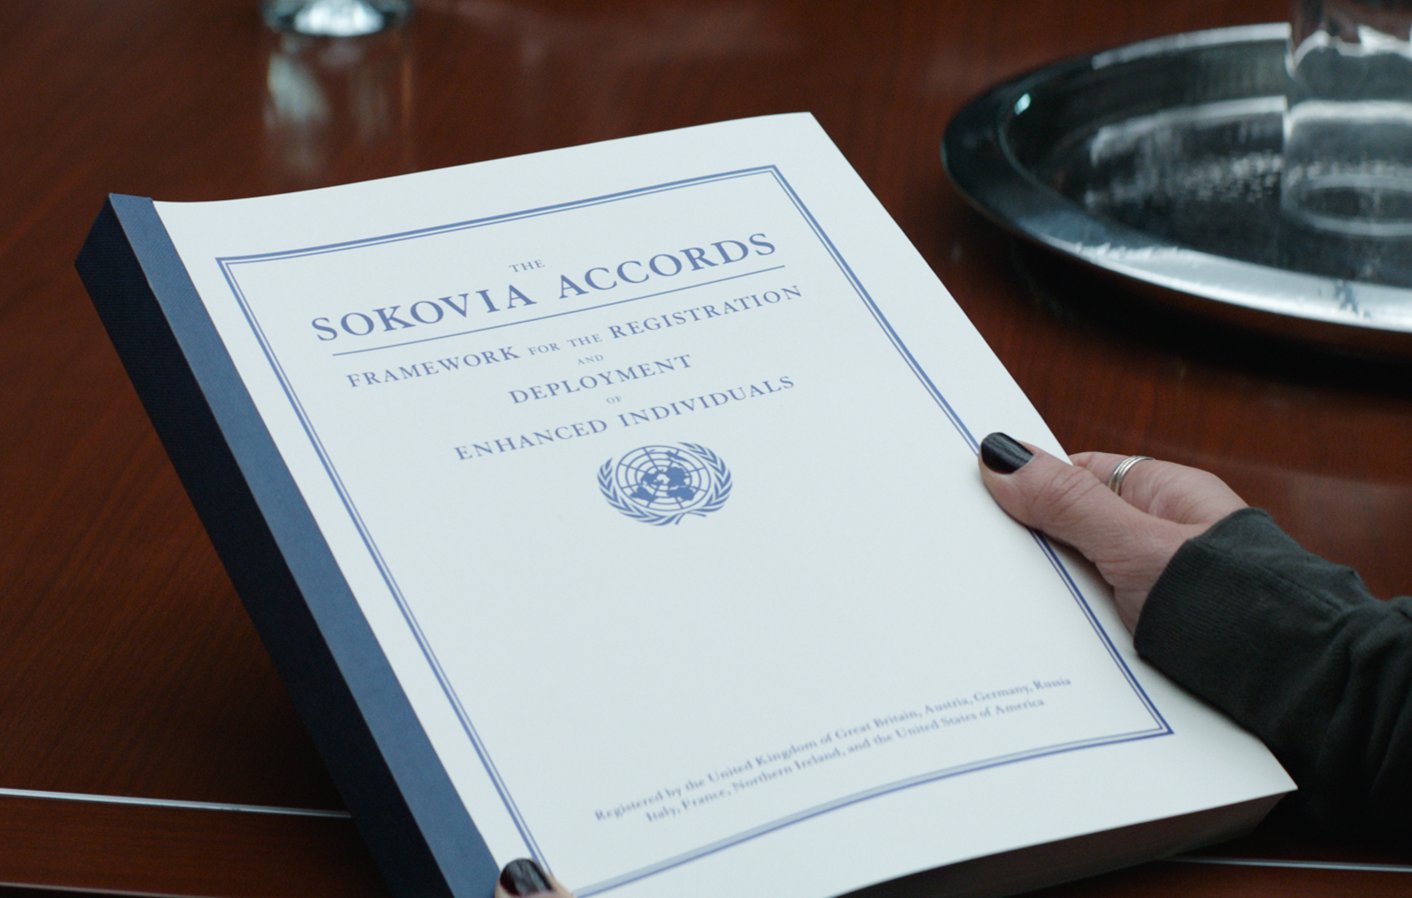 Sokoviaaccords